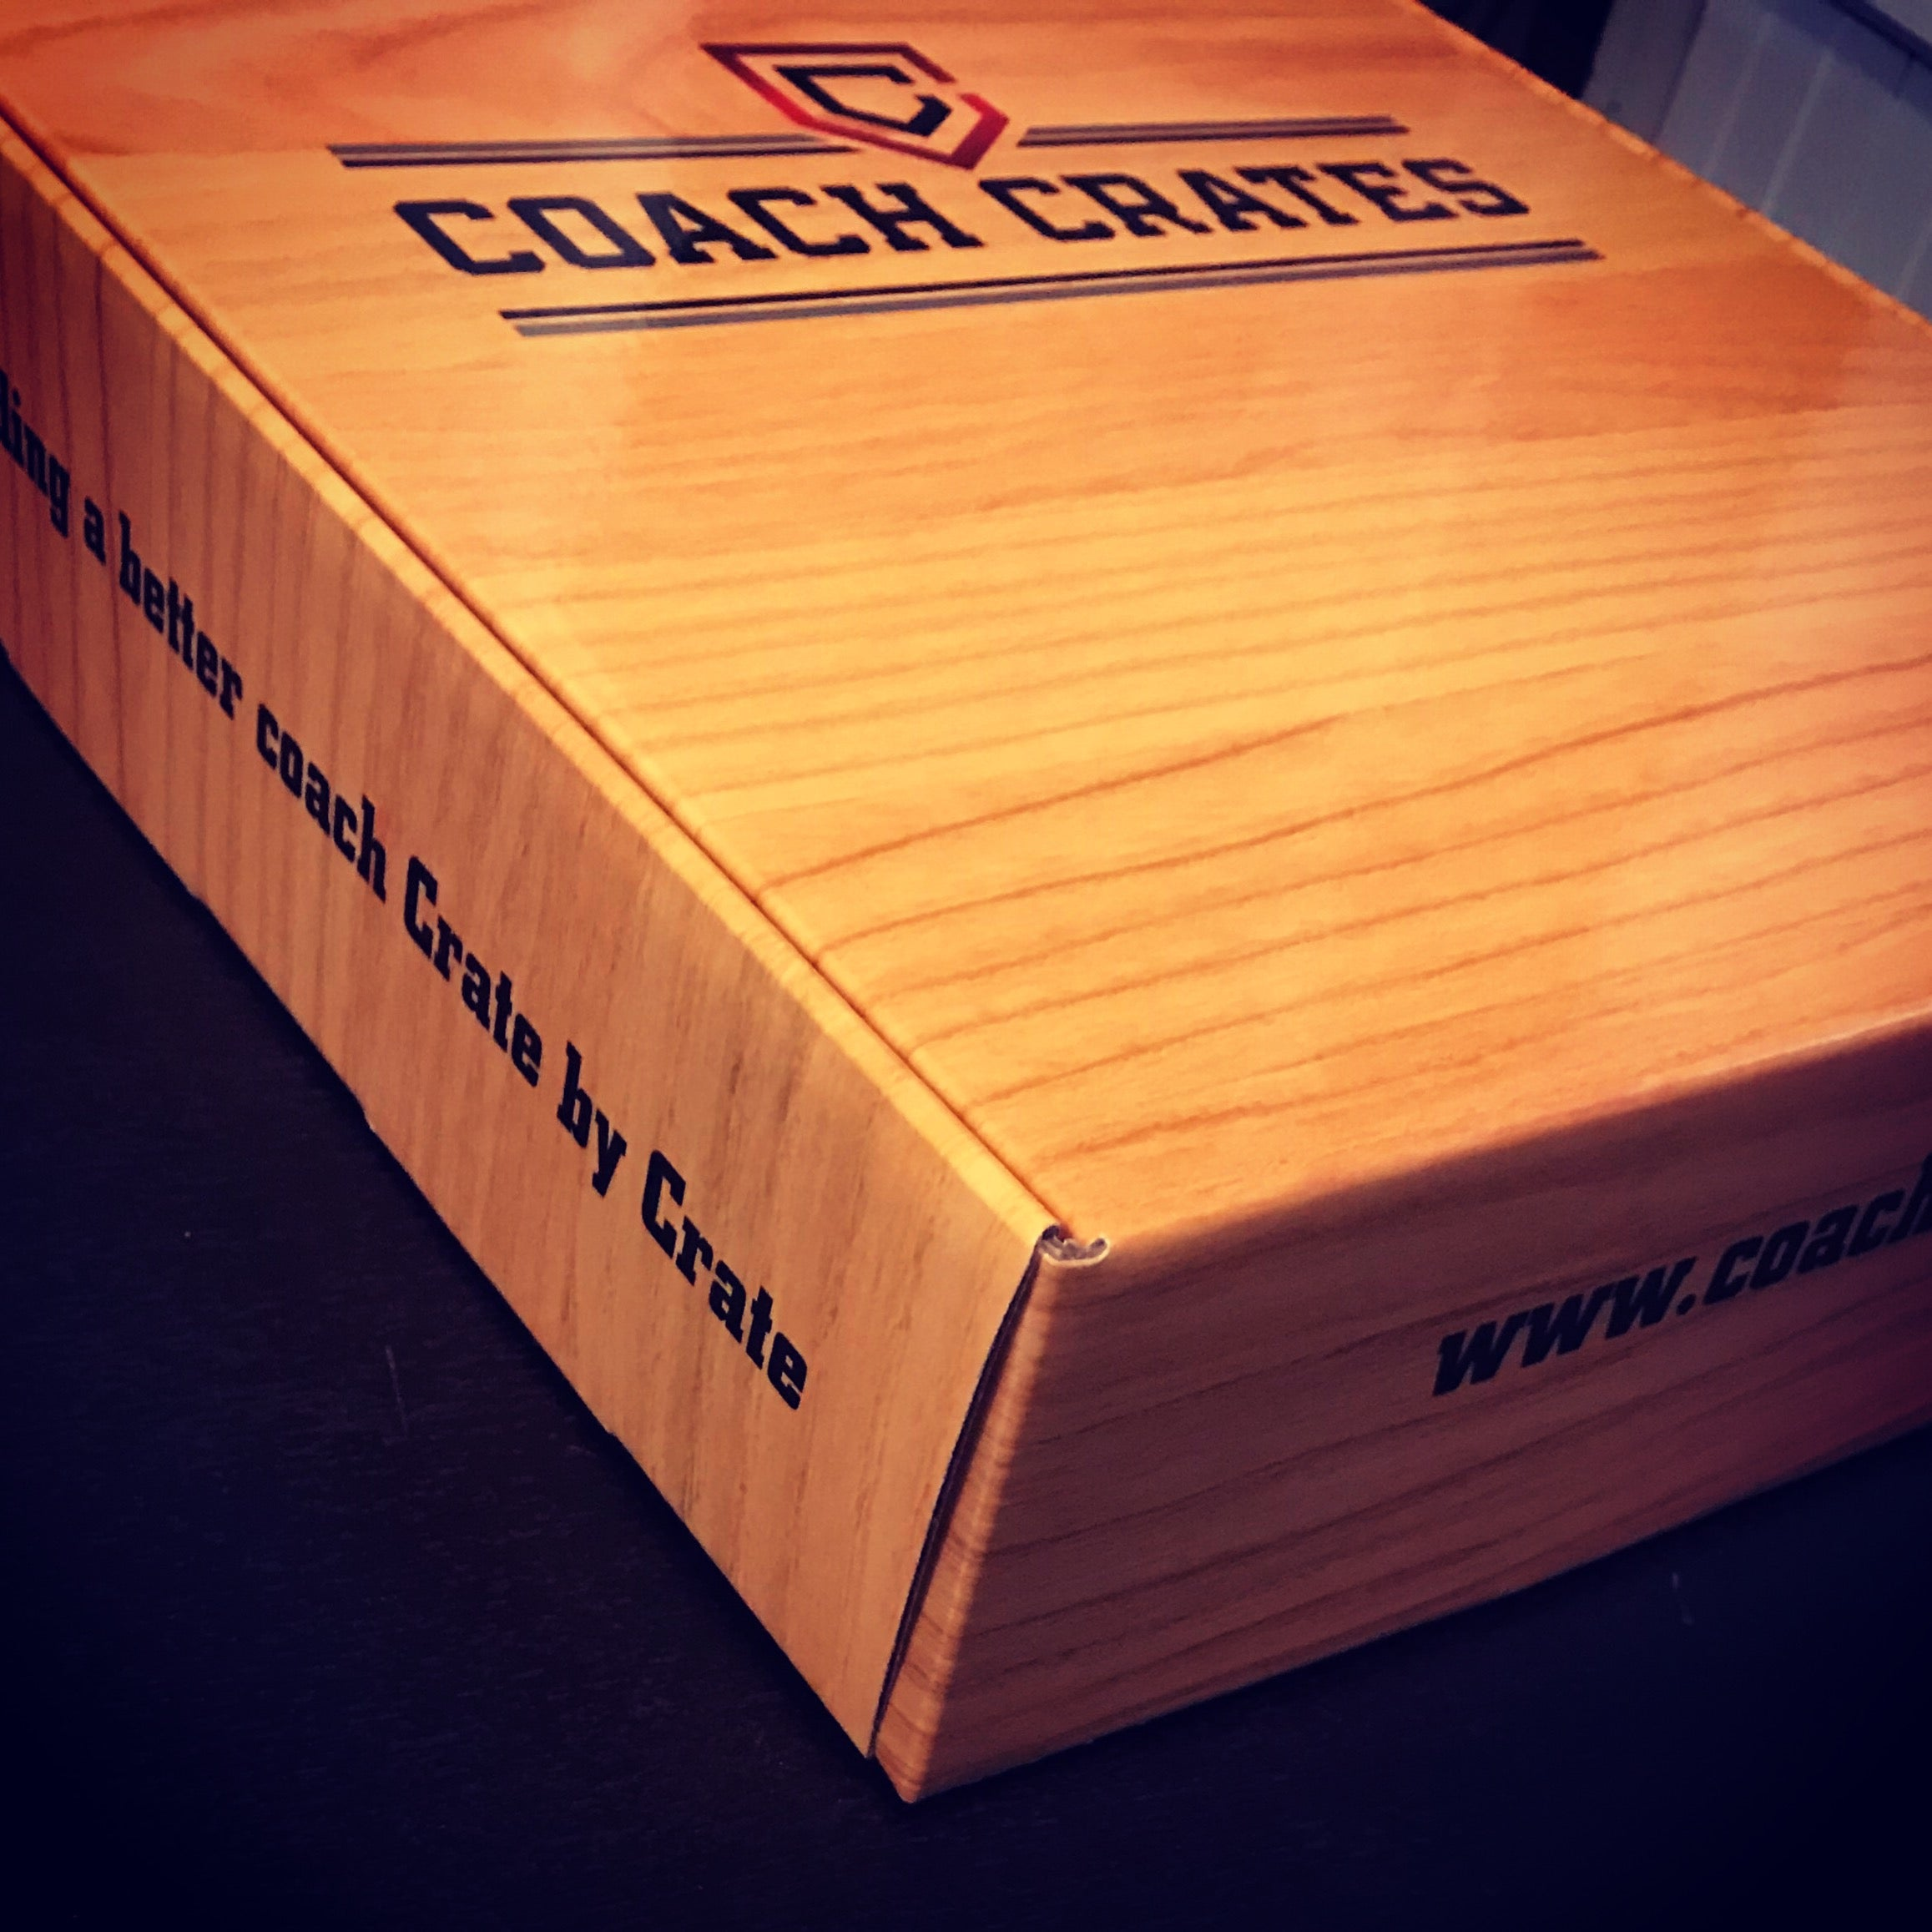 The Little League Crate - Coach Crates